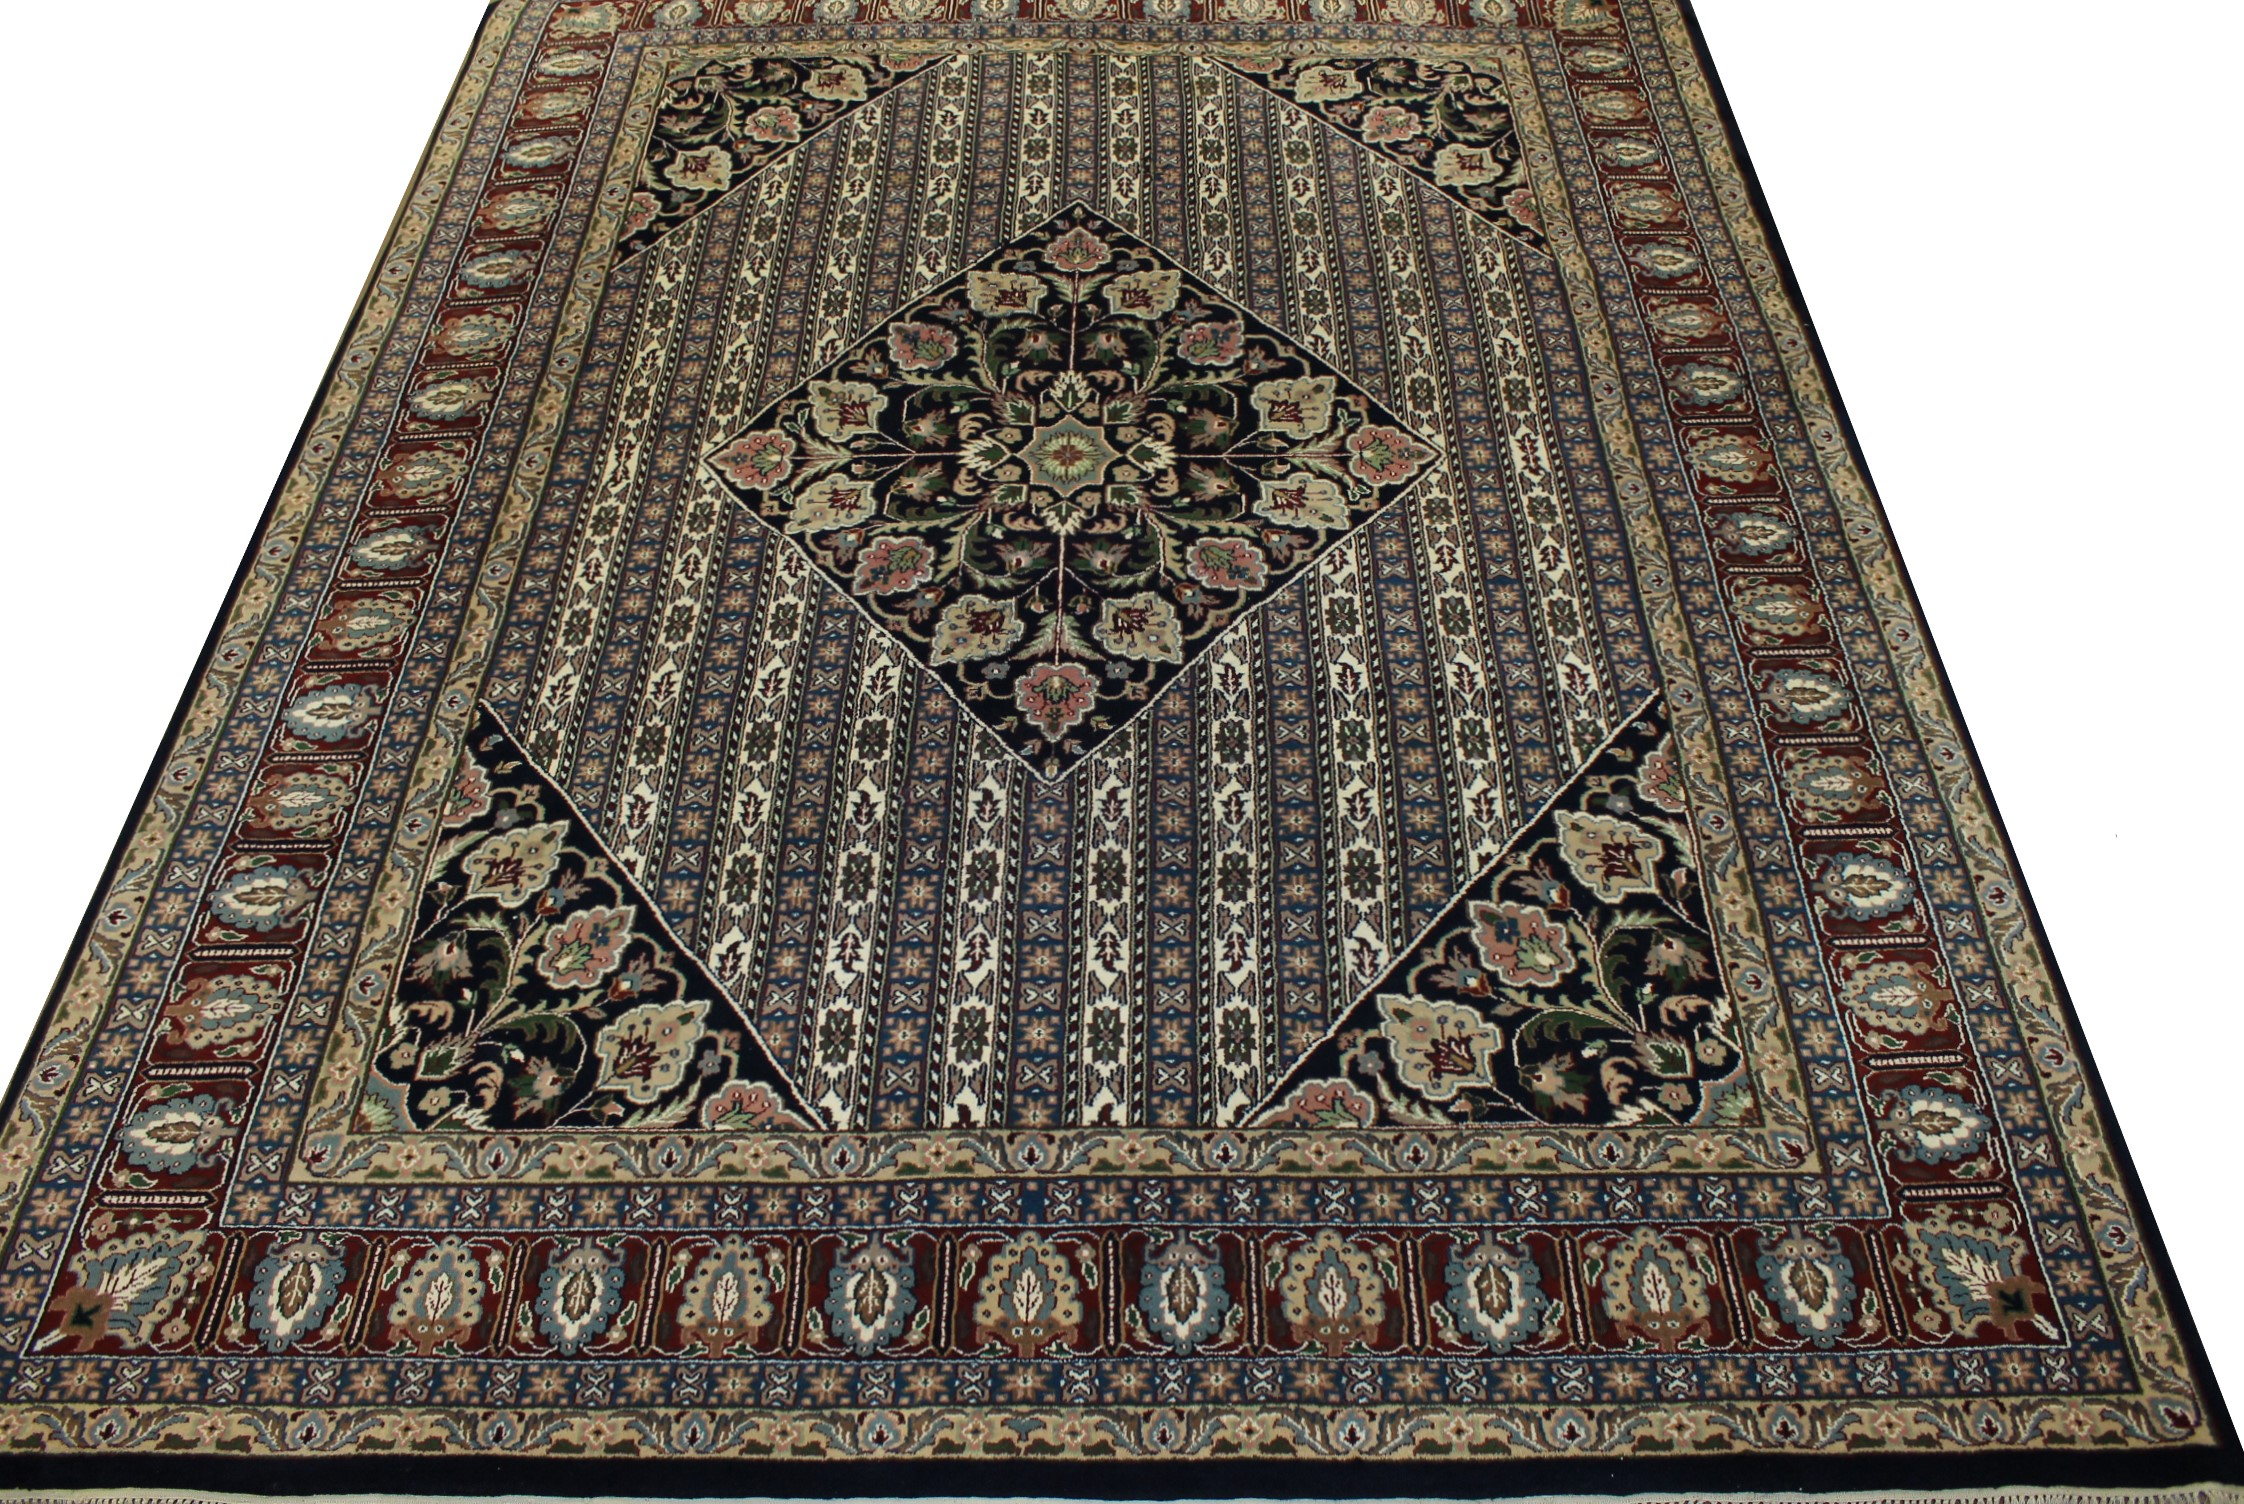 8x10 Traditional Hand Knotted Wool Area Rug - MR21010